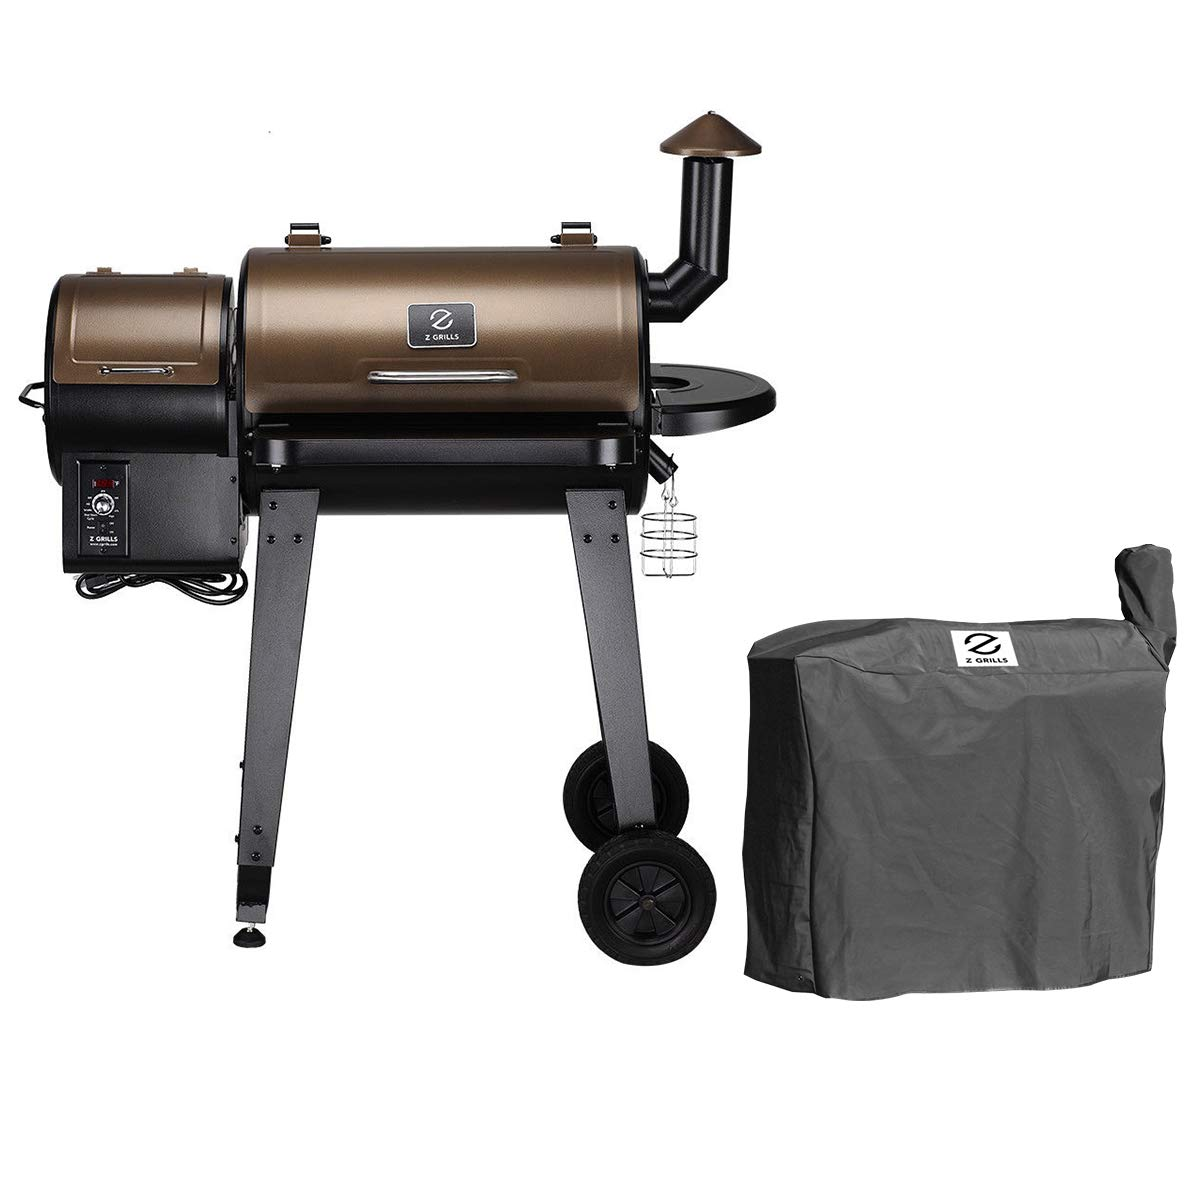 Z GRILLS ZPG-450A Wood Pellet Grill Smoker for Outdoor Cooking with Cover by Z GRILLS